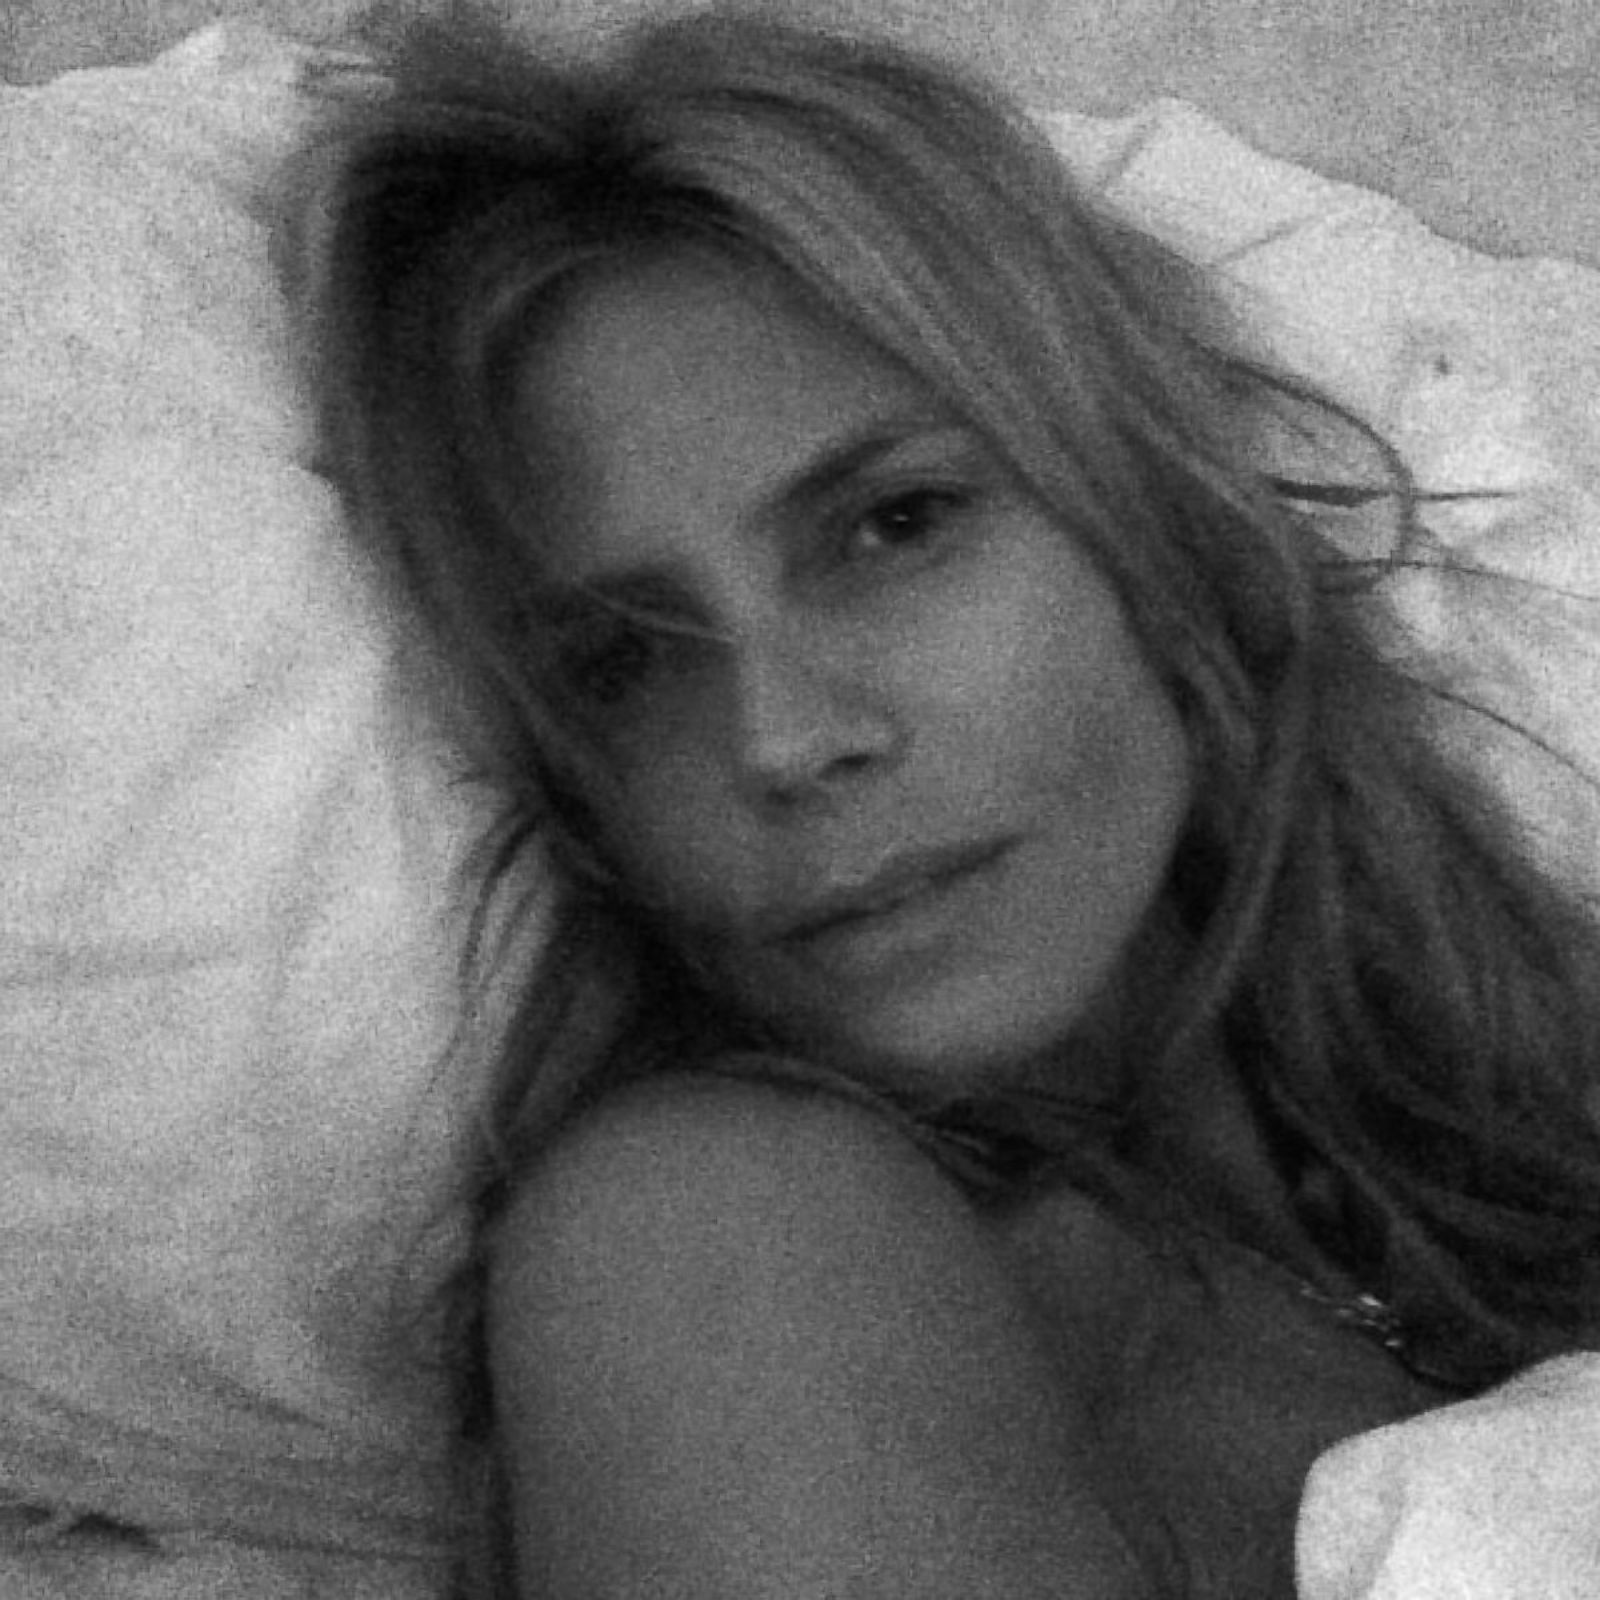 See Heidi Klum Barefaced In Bed Picture Celebrities